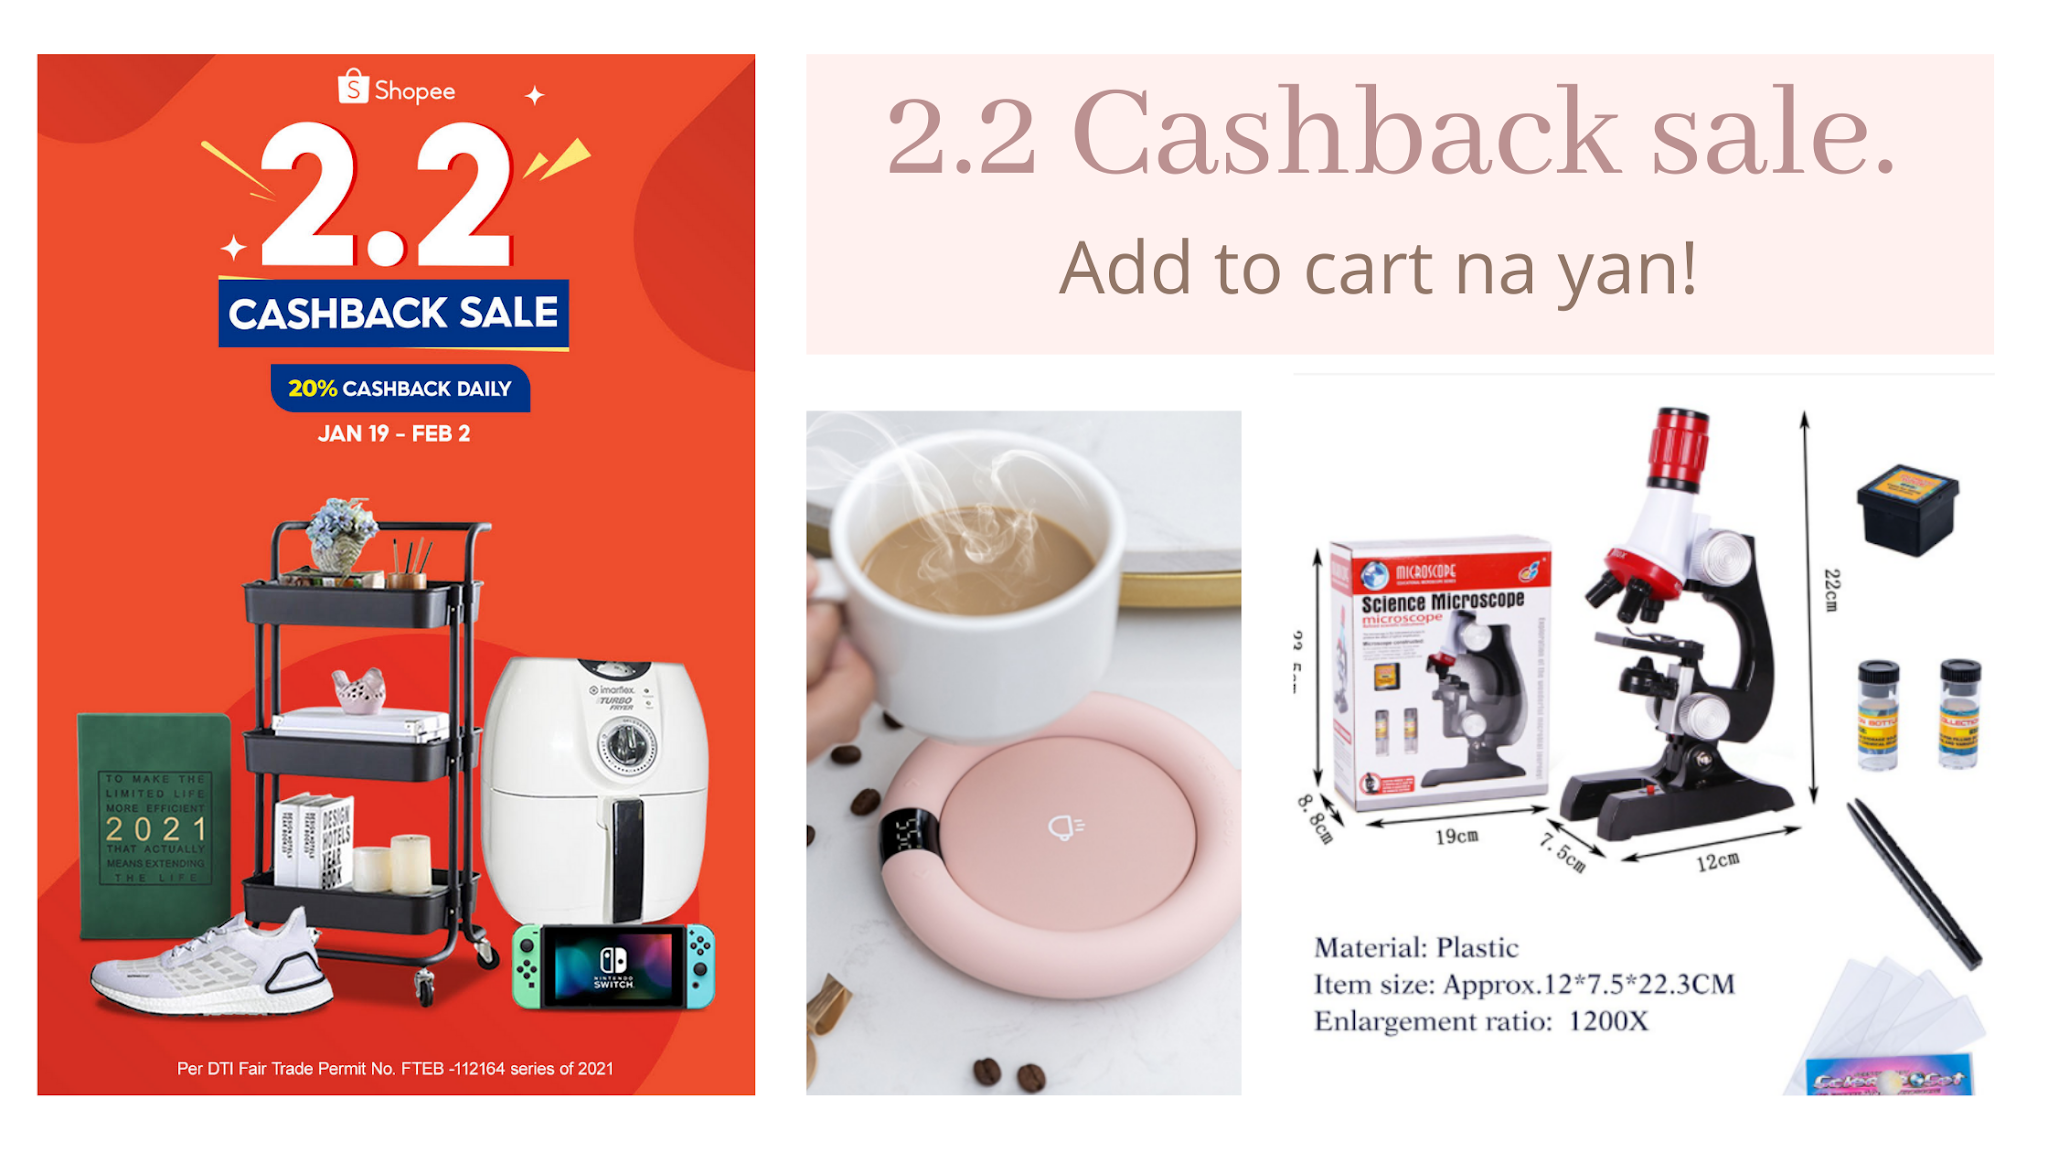 2.2 Shopee Cashback sale is here! Check out my top picks items from homeschooling, decors, fashion, electronics and more. Life with ZG